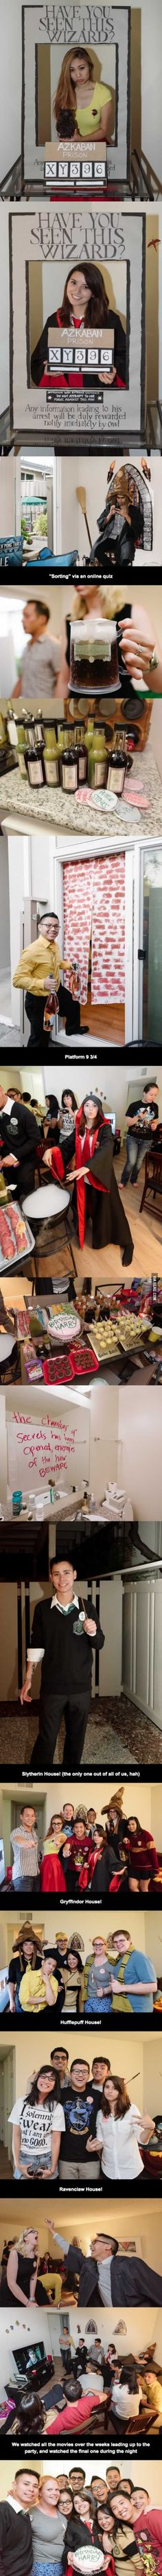 Just a Harry Potter birthday party for adults. I want to be friends with these people!